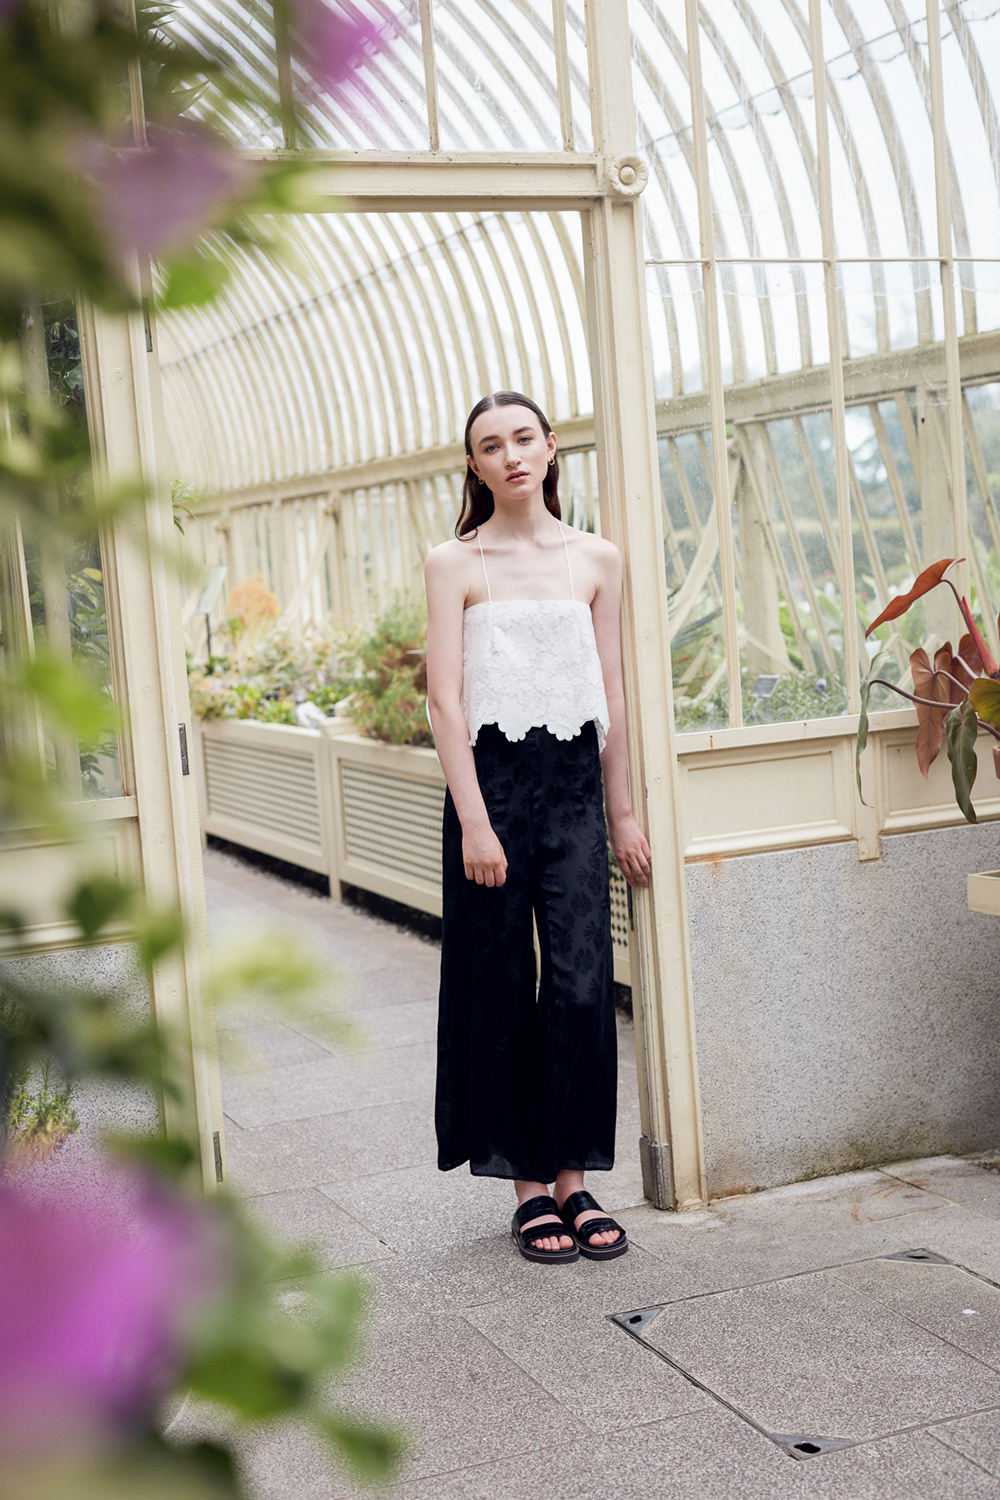 National Botanic Gardens Dublin photoshoot by Johnny McMillan